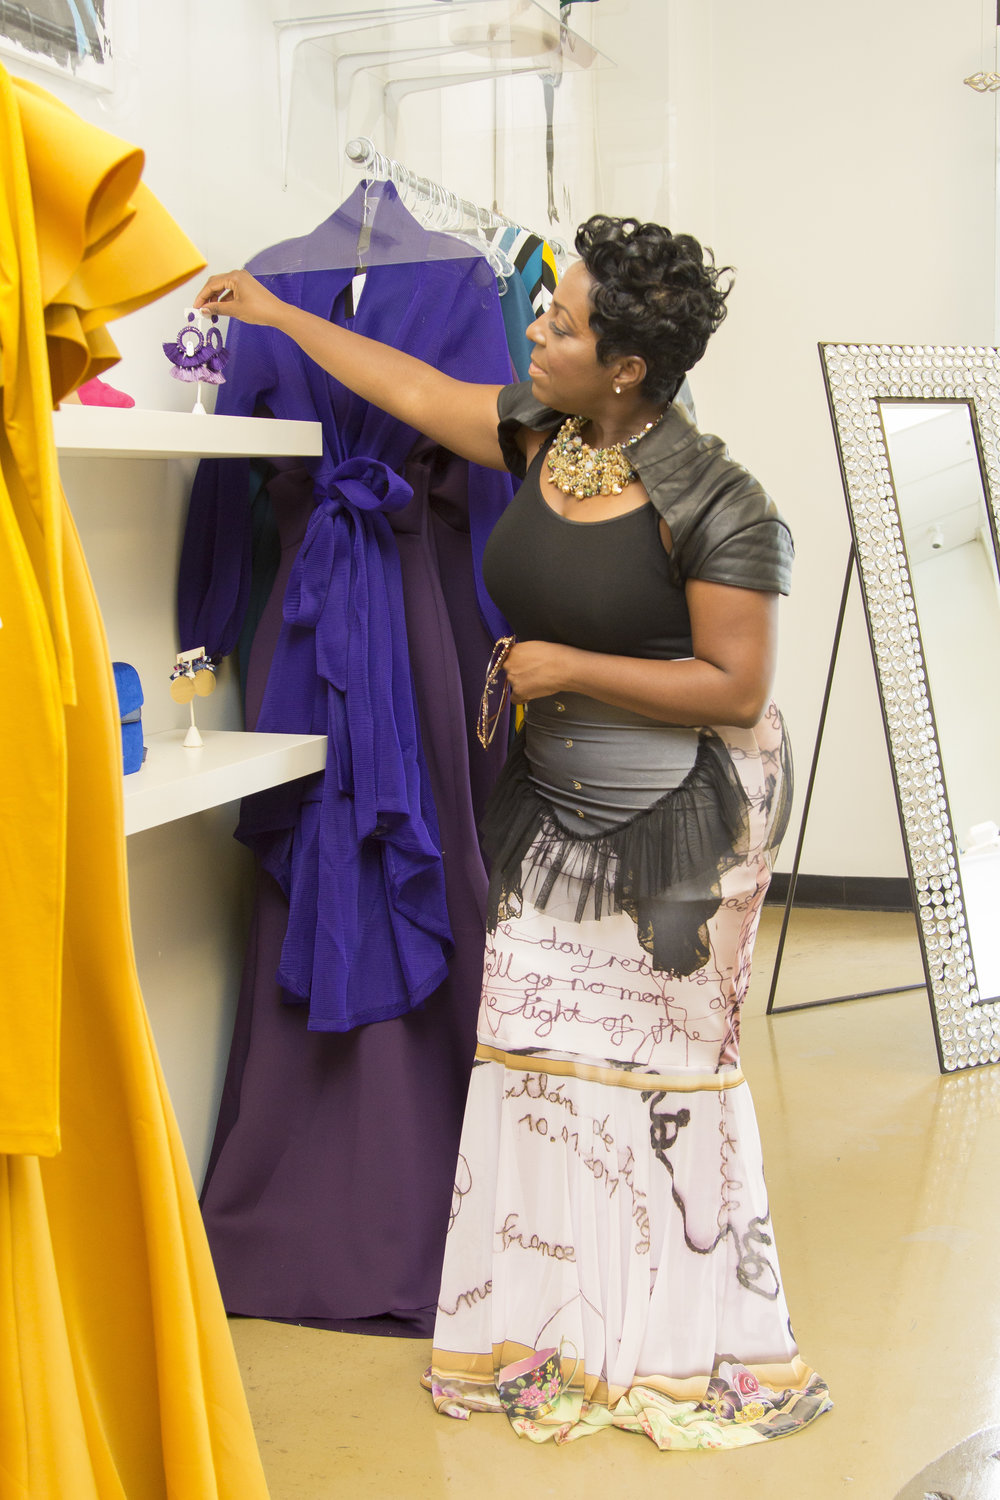 Kim Harden 44 - Great pic - Pulling Aceessories w_ Mustard Dress and Purple Earrings.JPG